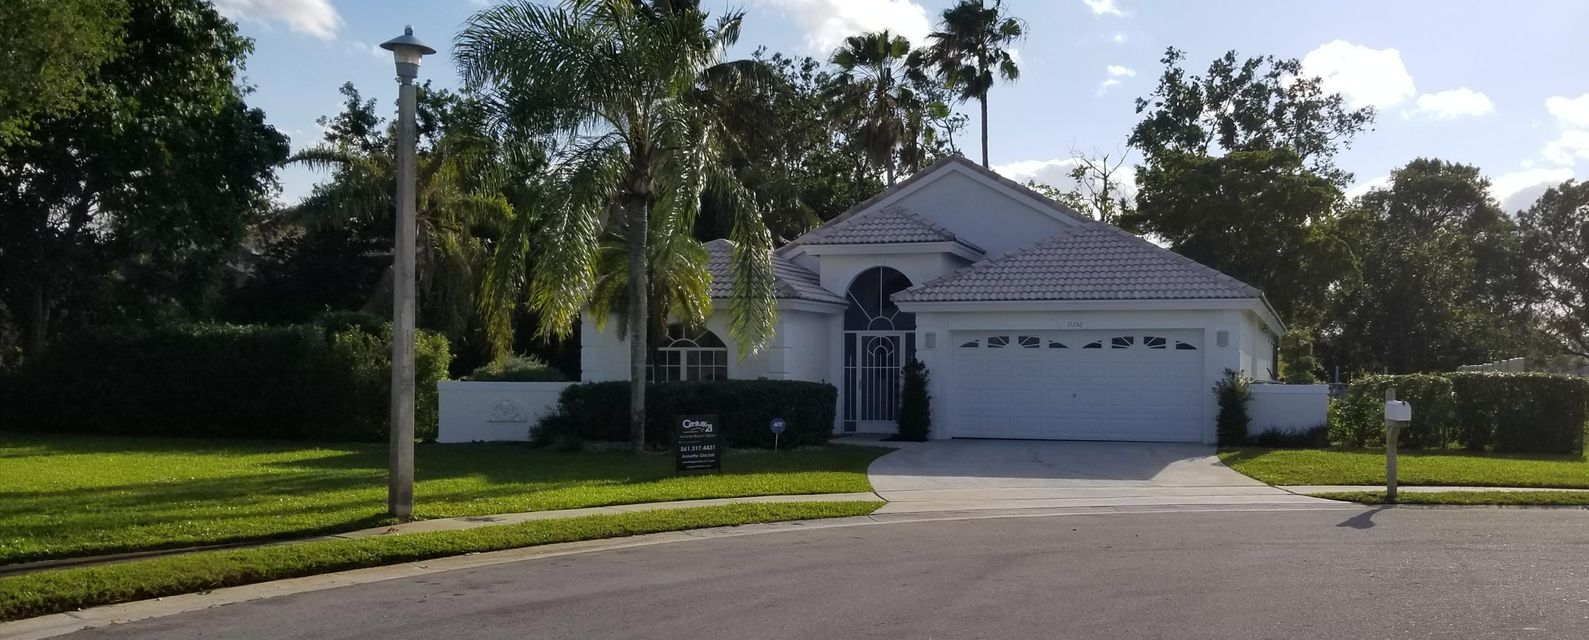 11356 Coralwood Court  Wellington FL 33414